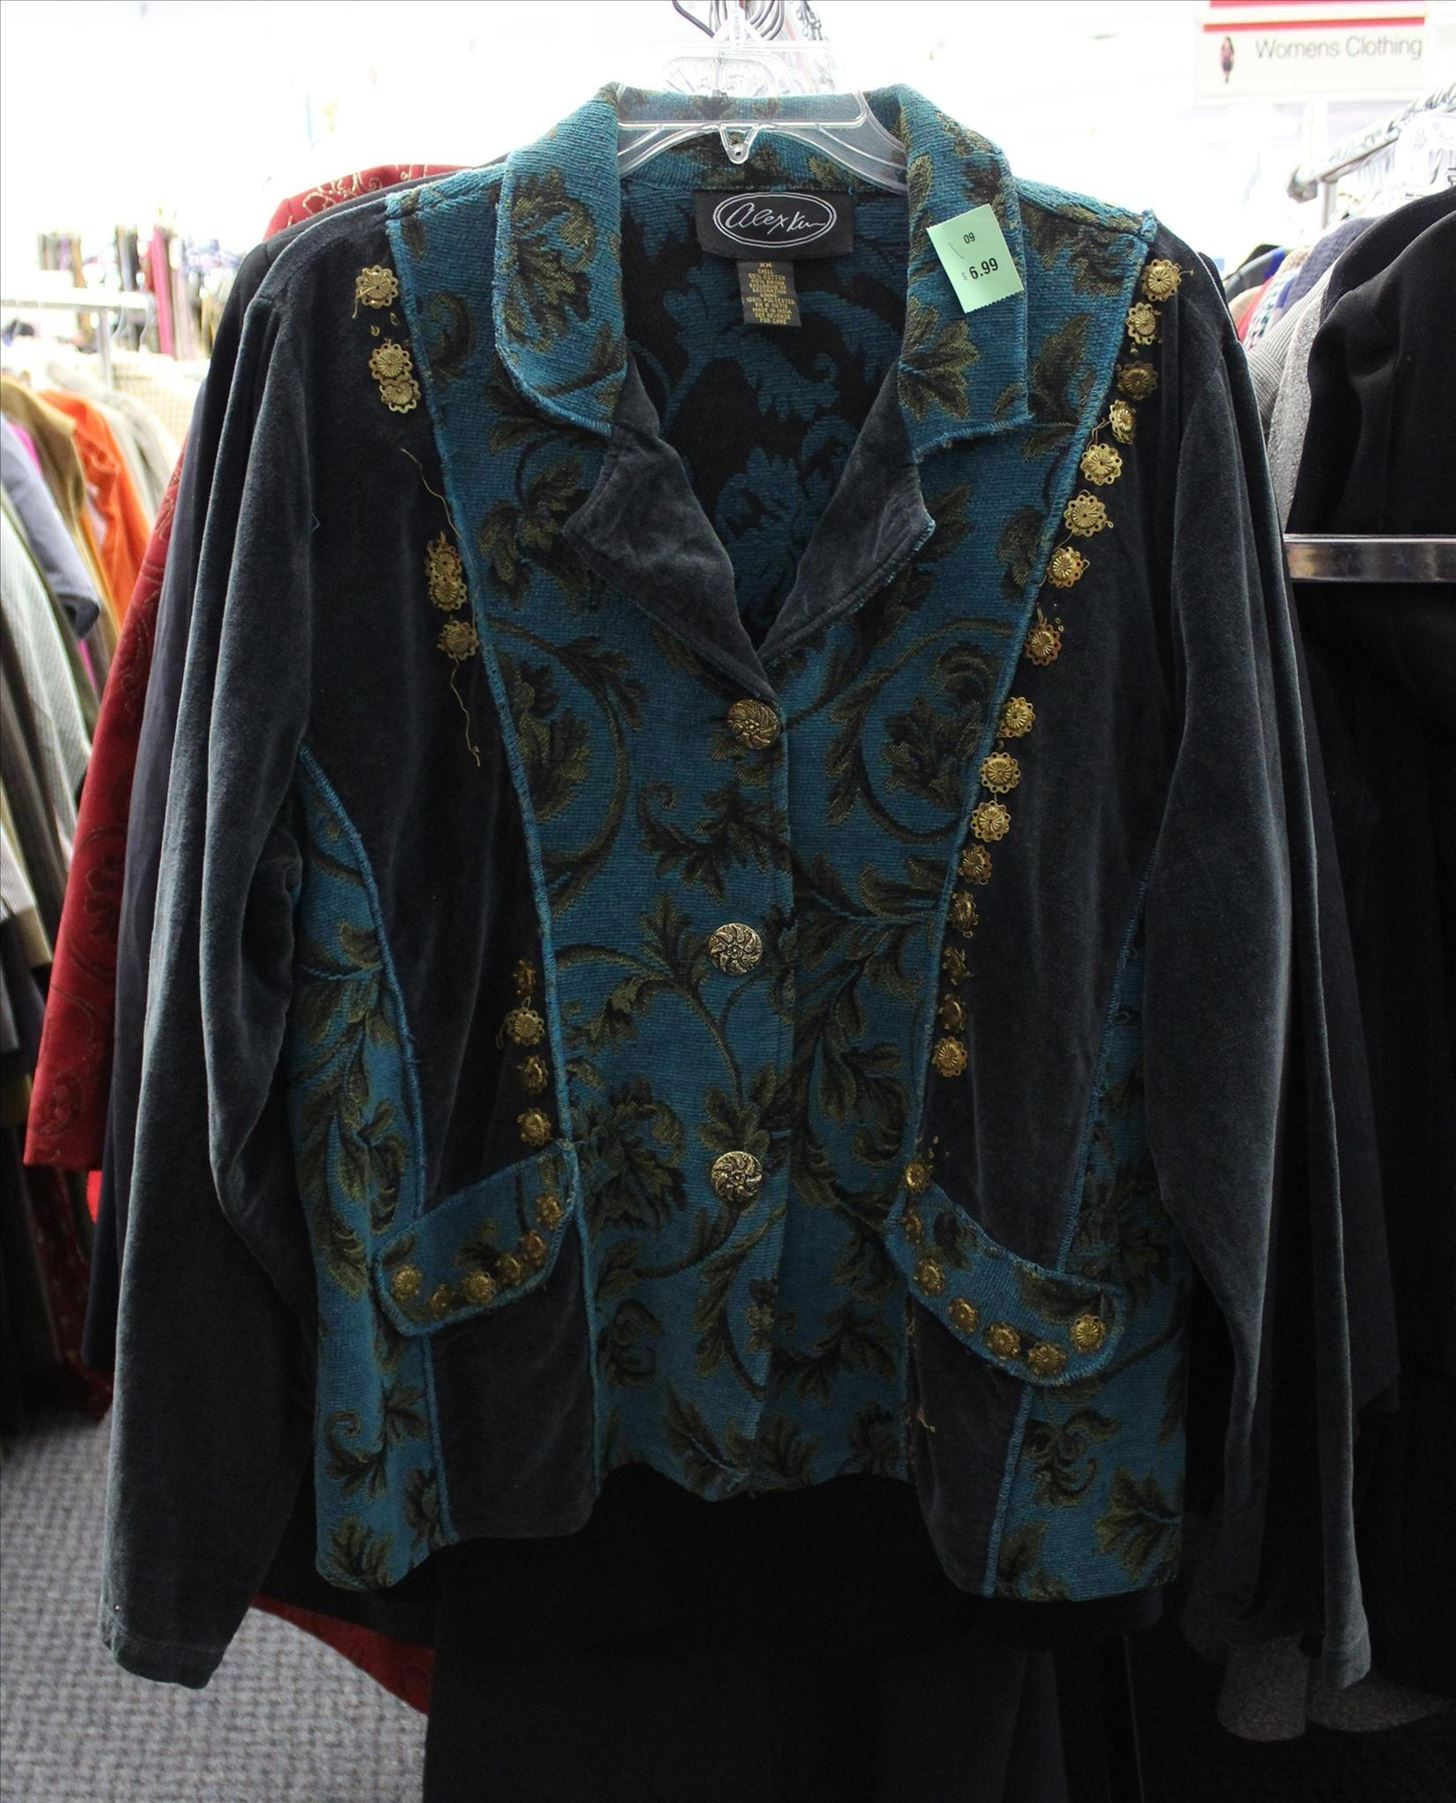 Steampunk on a Thrift-Store Budget: A Guide to Successful ...